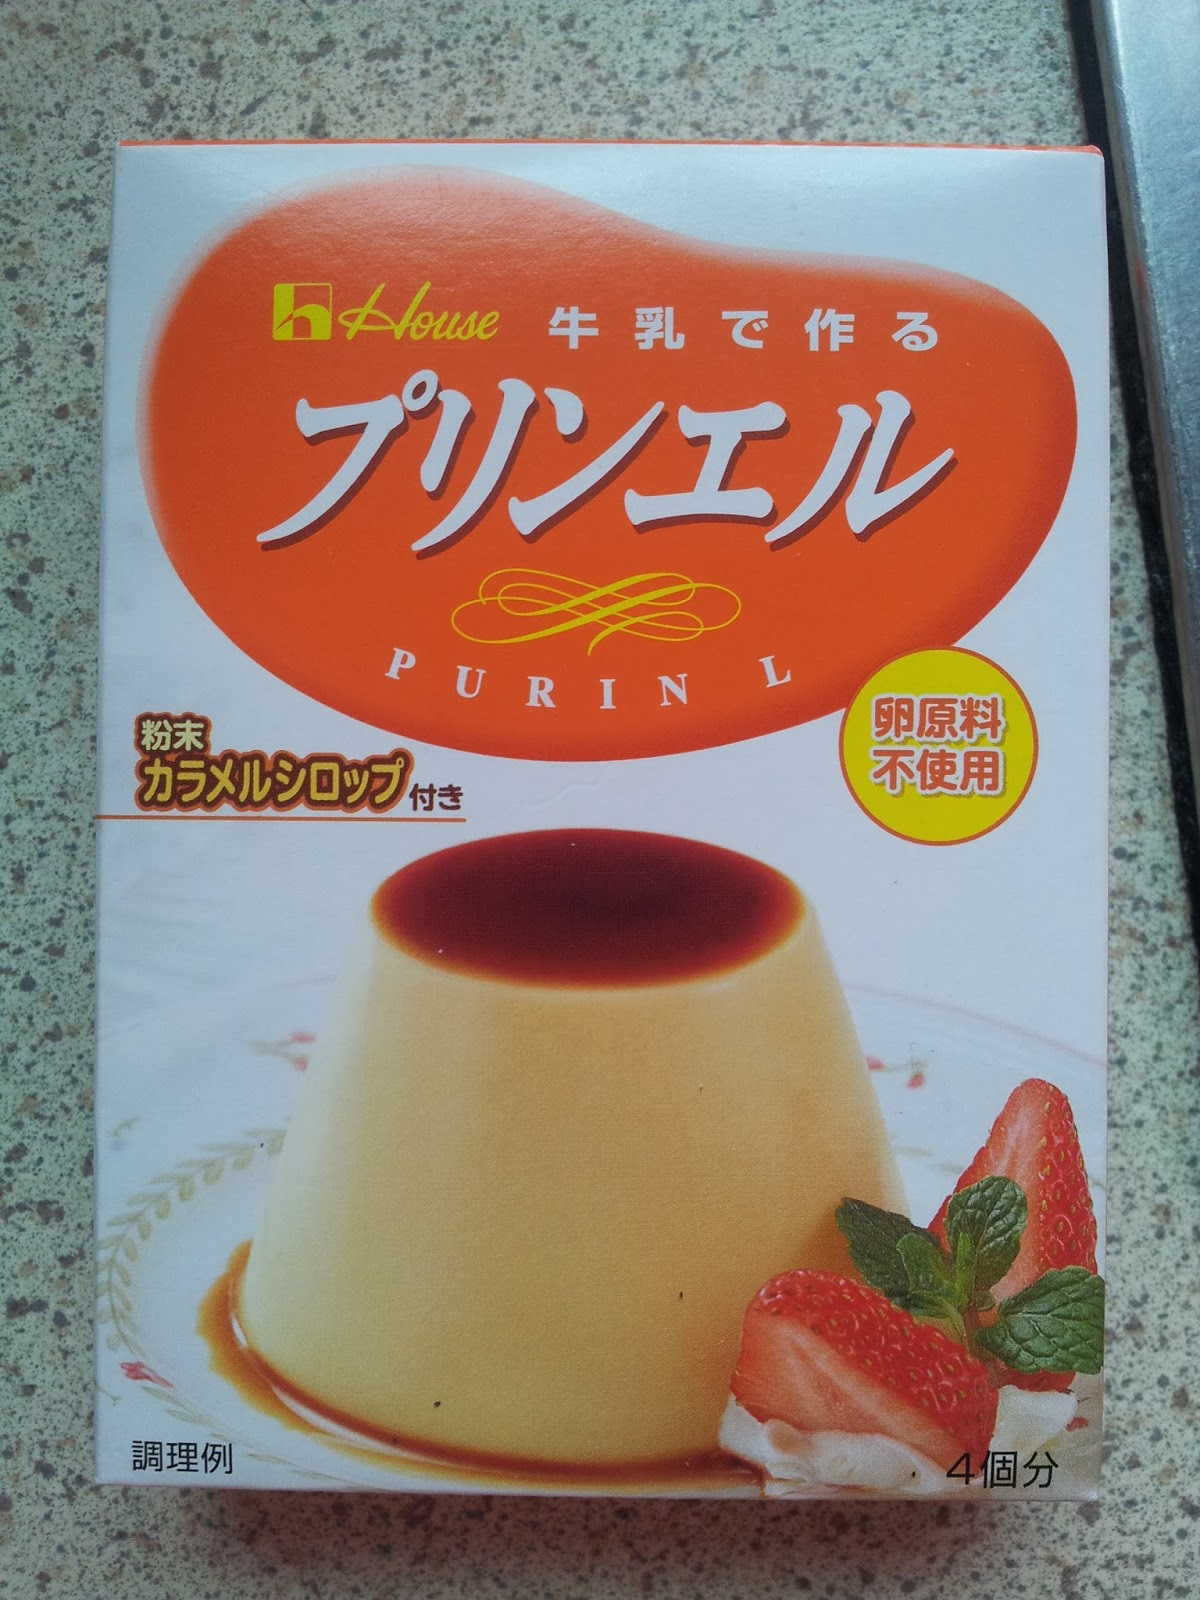 Instant pudding powder